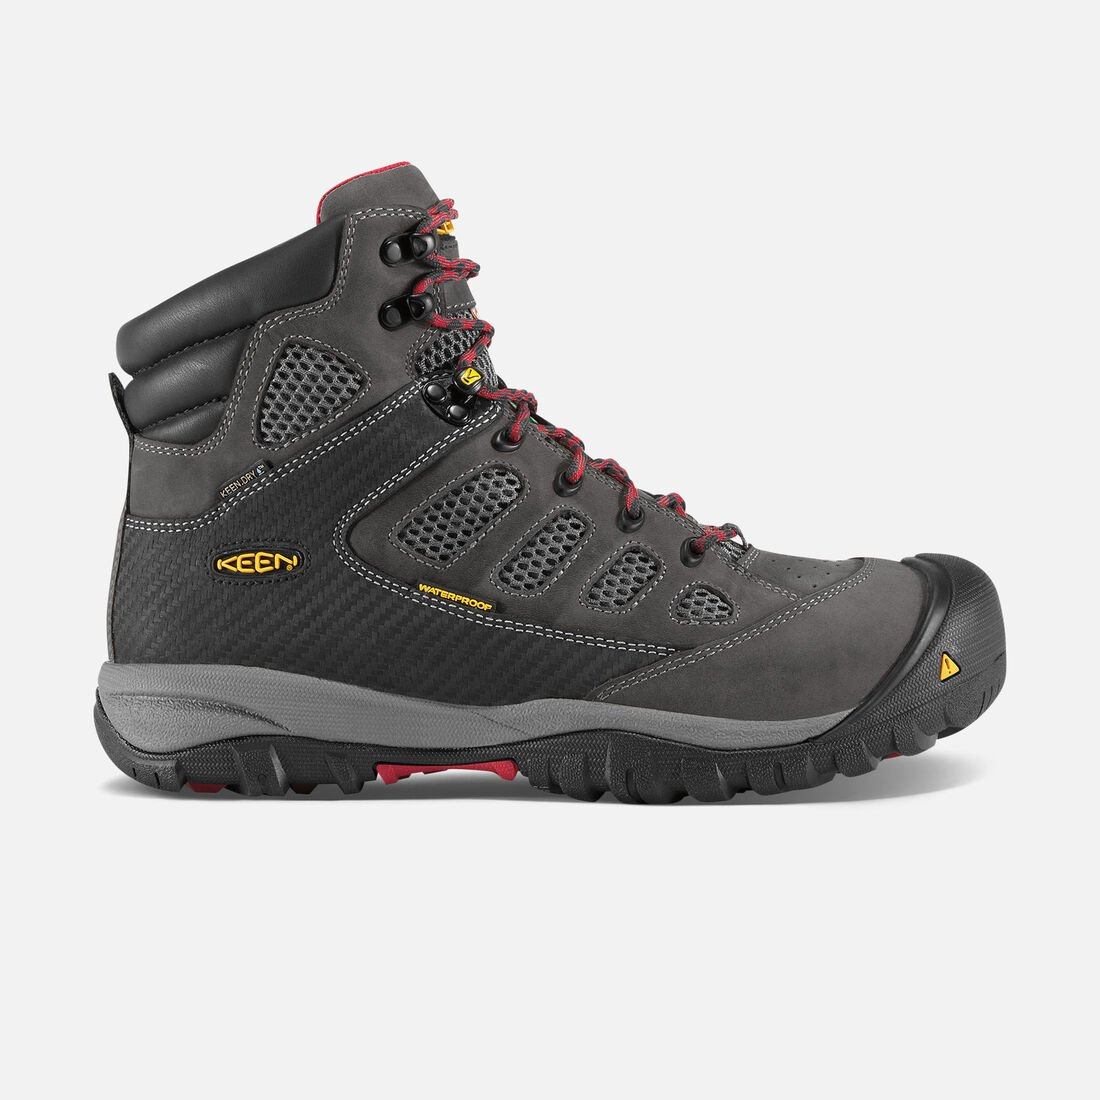 7a4cb5d470c Men's CSA Doverland Waterproof Mid (Steel Toe) - Your feet stay dry ...